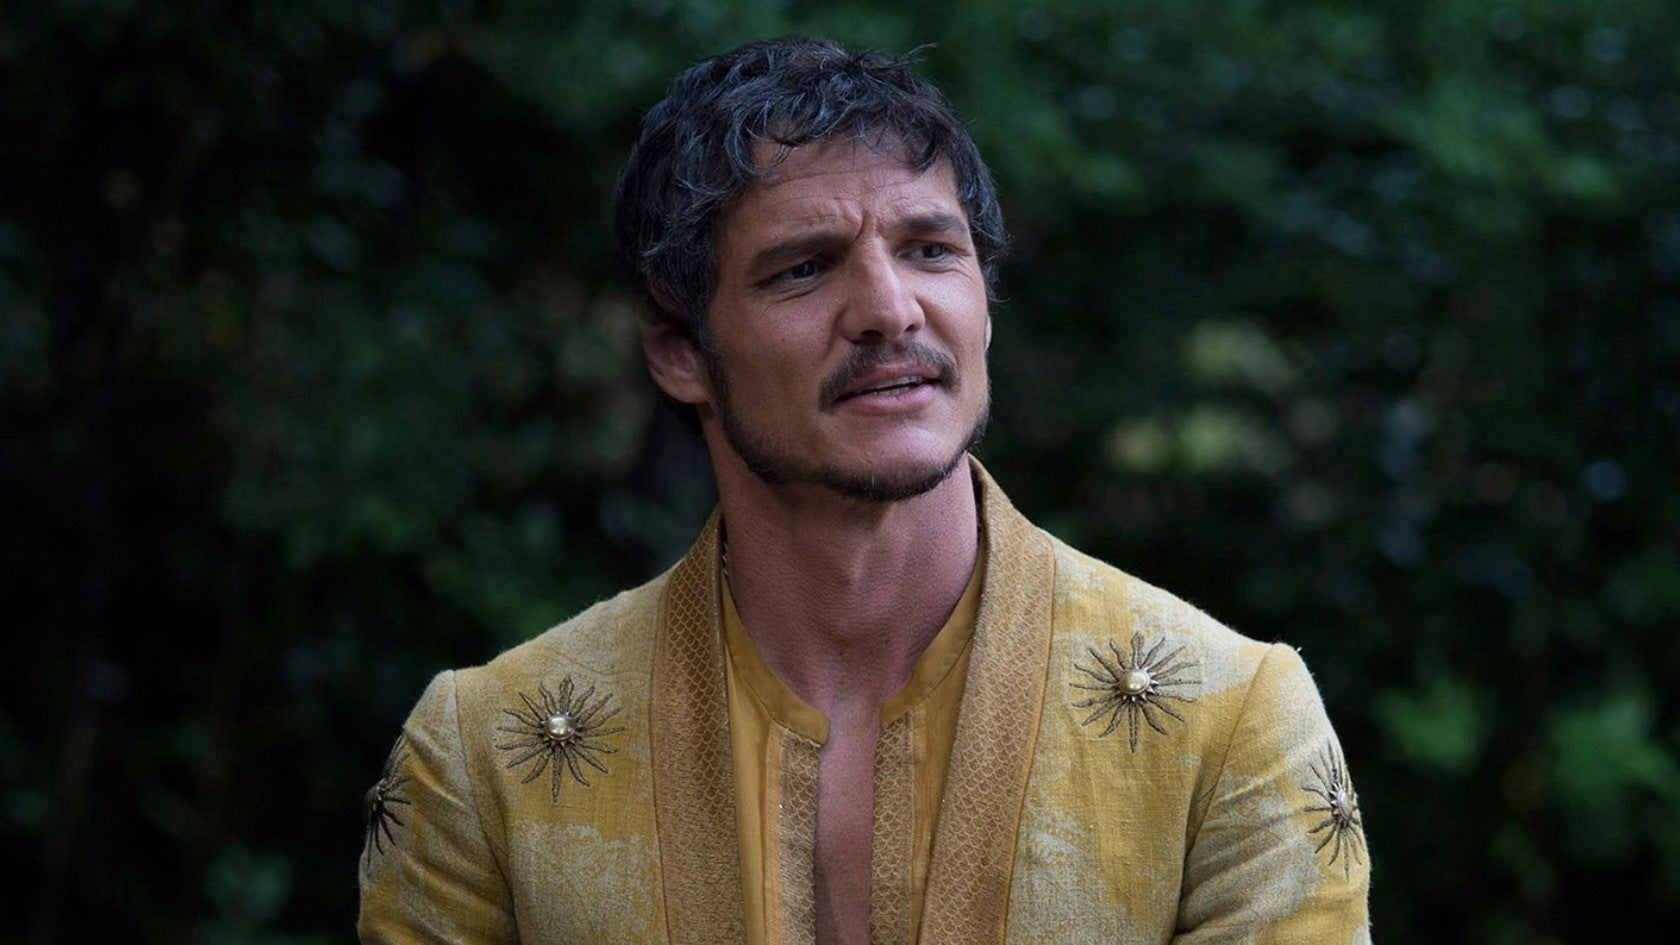 Game Of Thrones Star Pedro Pascal Just Landed A Mystery Role In Wonder Woman 2